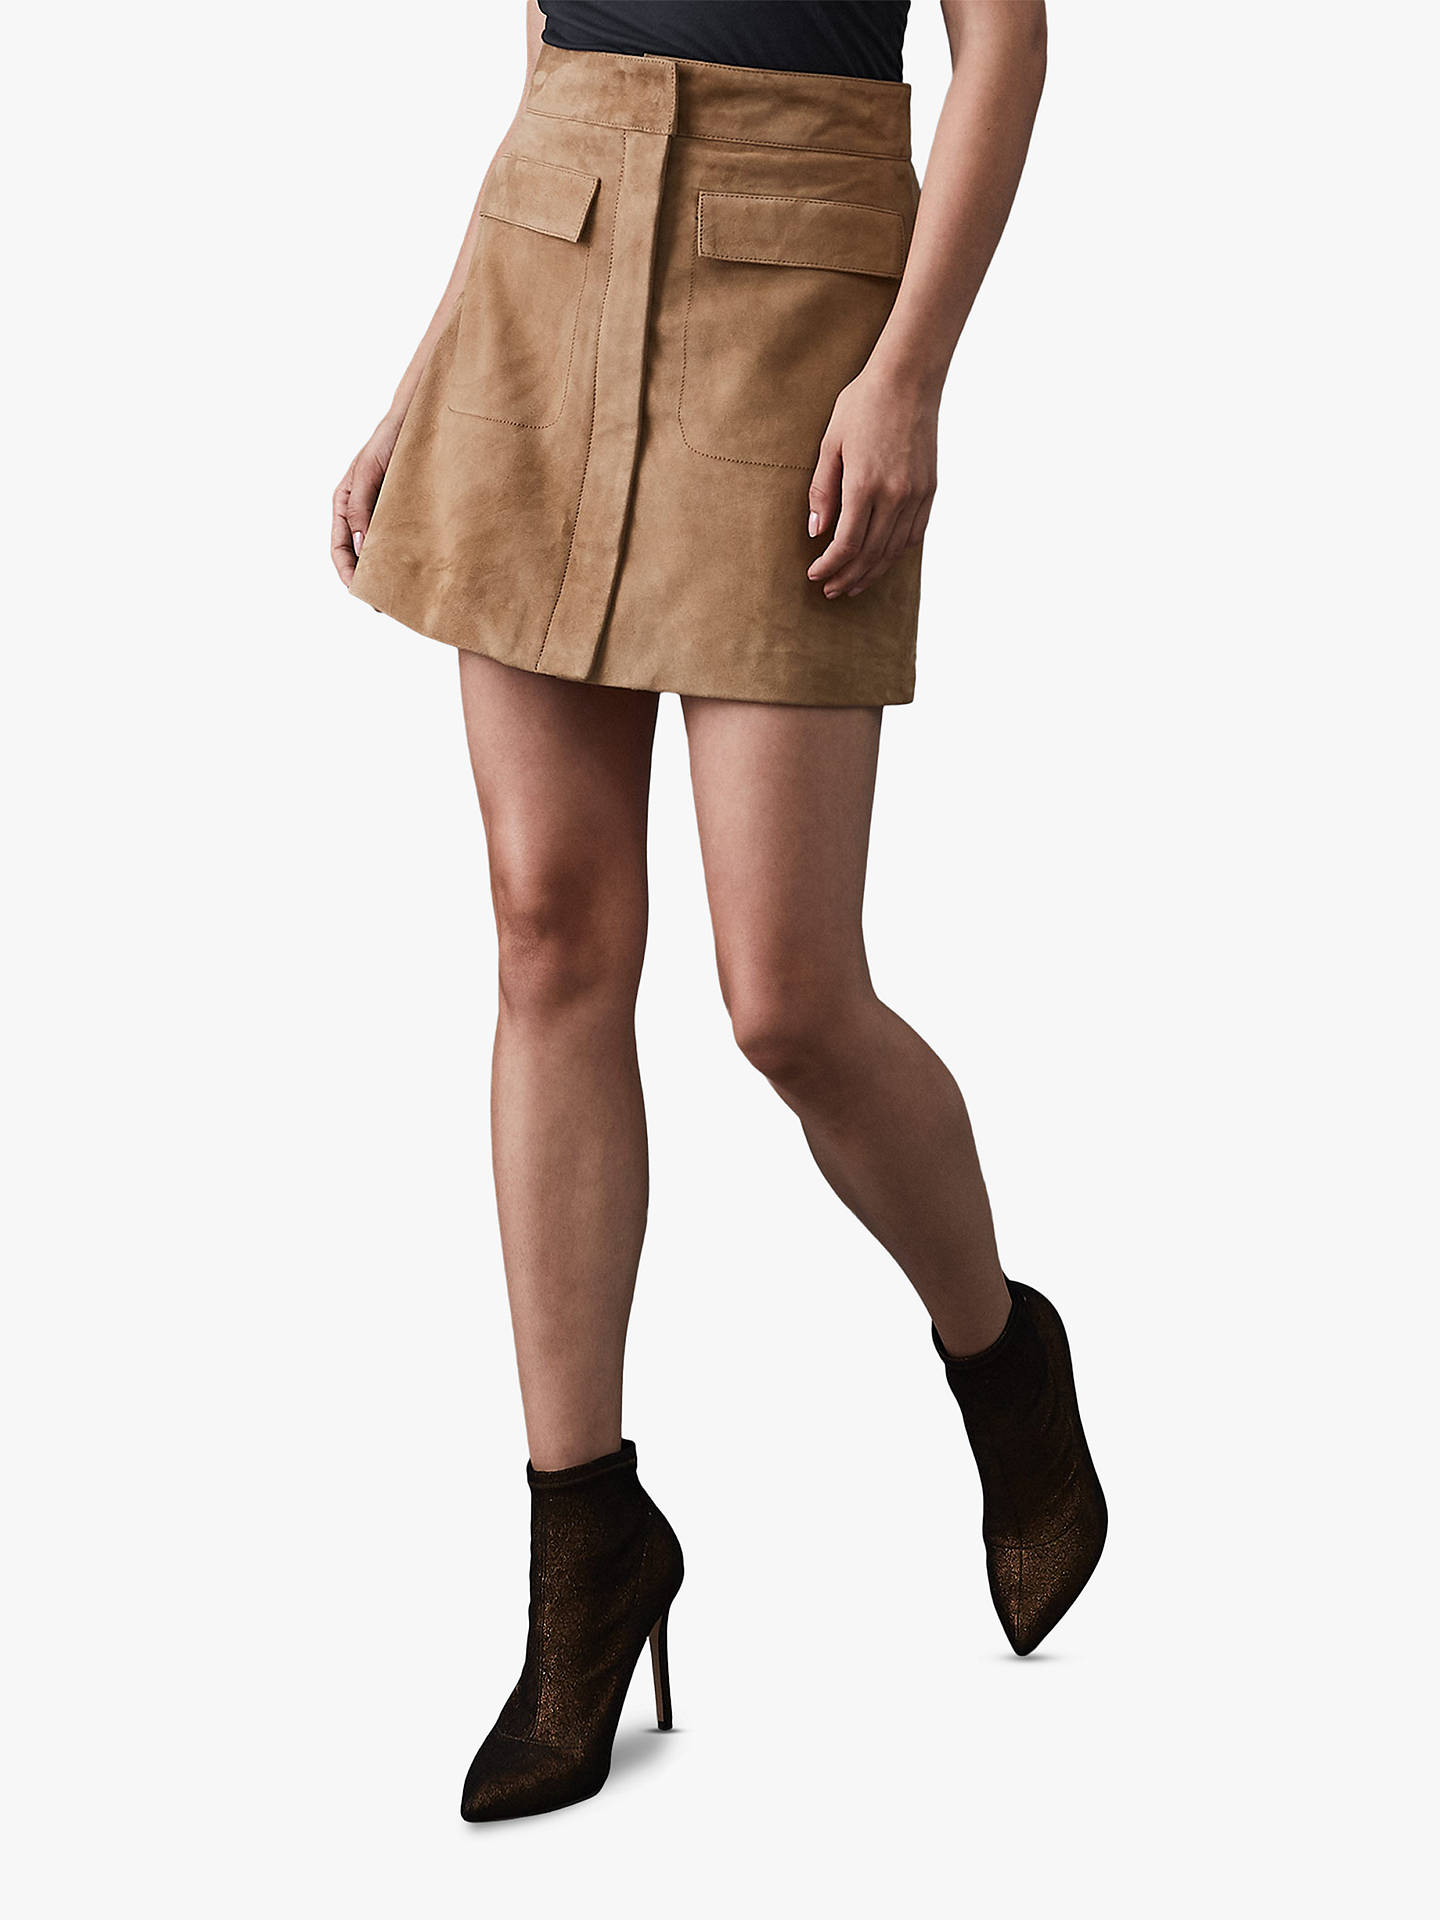 BuyReiss Leah Zip Front Suede Mini Skirt, Stone, 6 Online at johnlewis.com